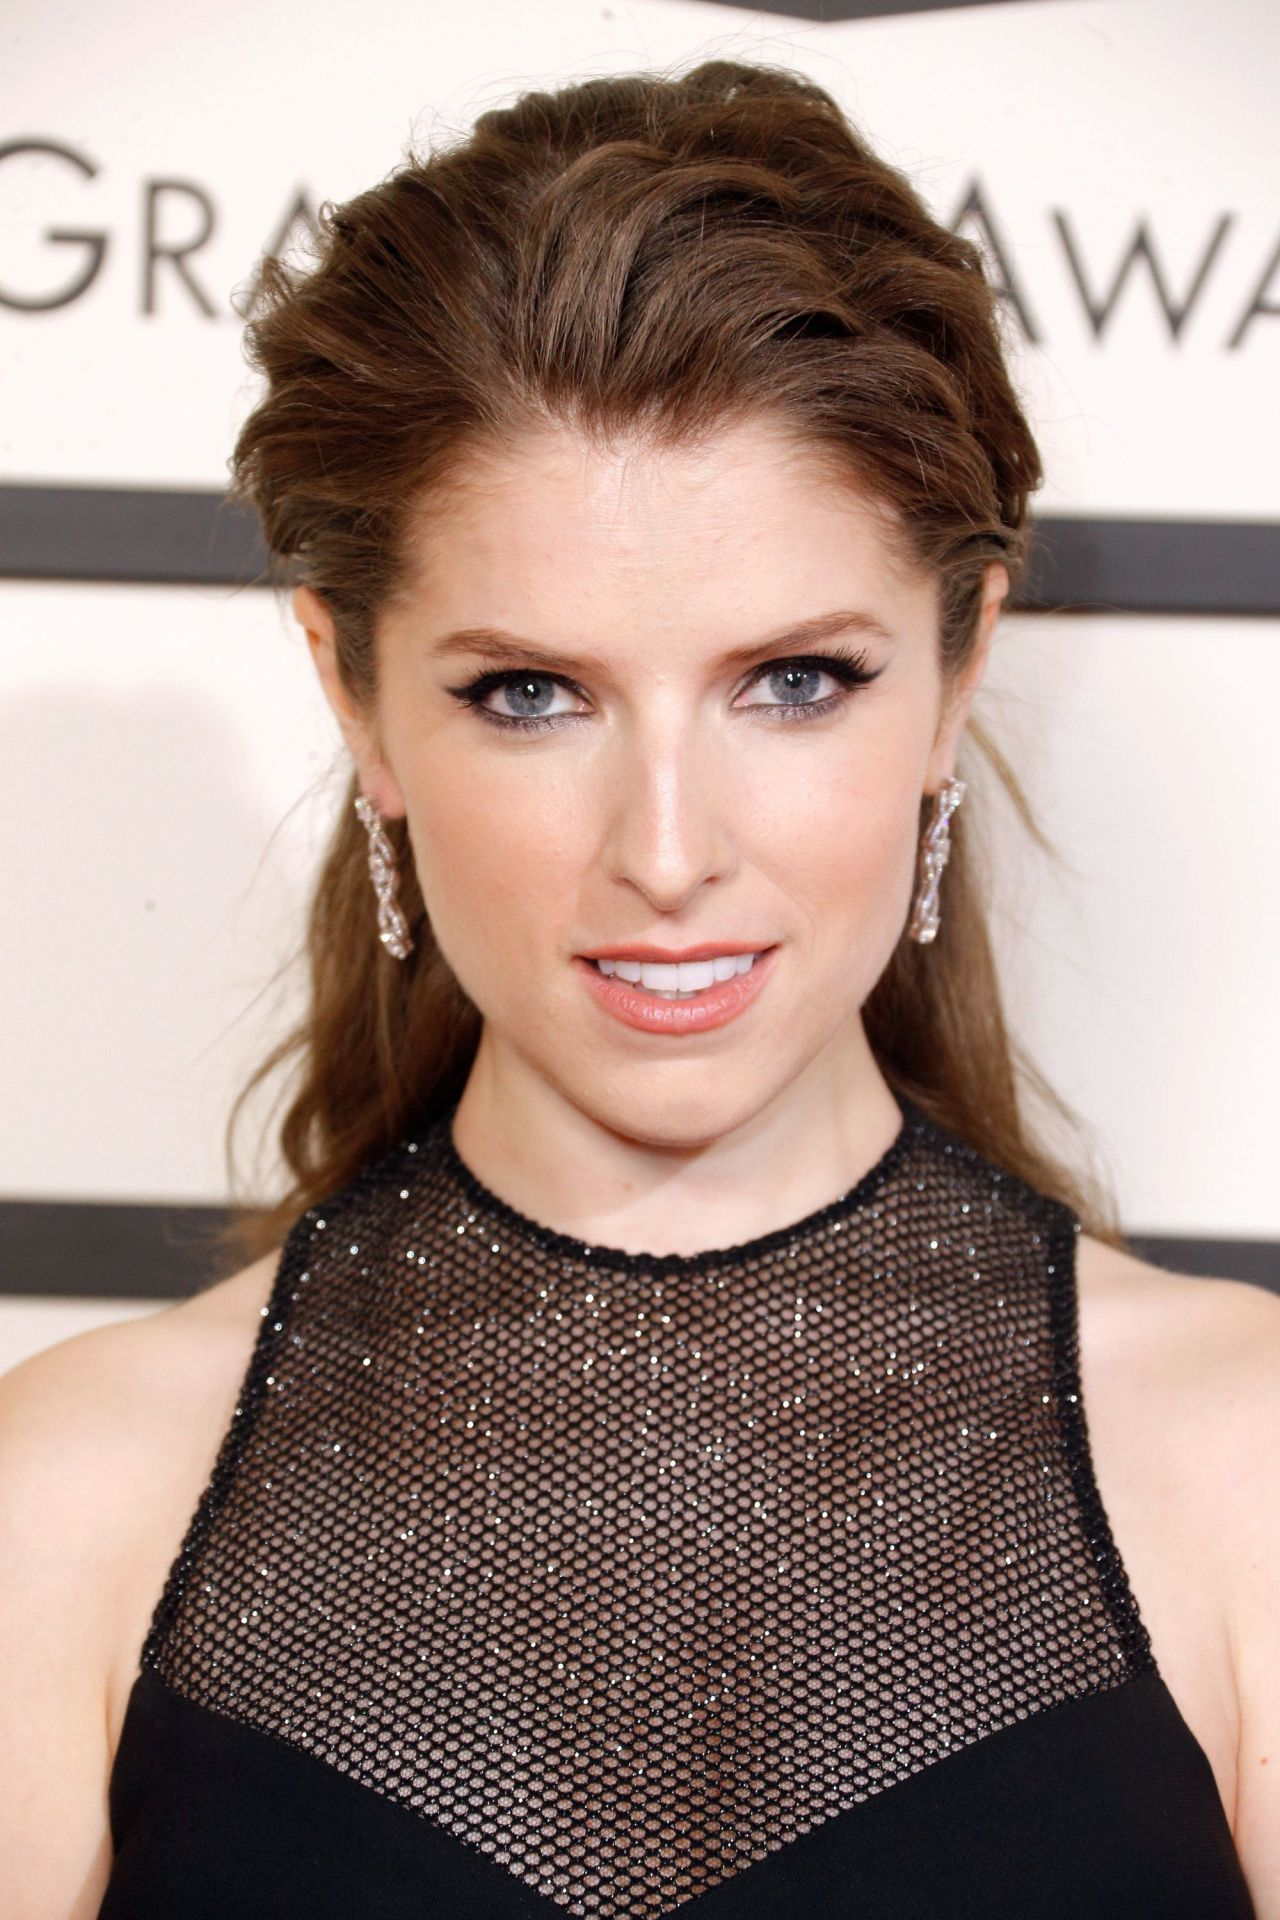 http://celebmafia.com/wp-content/uploads/2016/02/anna-kendrick-2016-grammy-awards-in-los-angeles-ca-2.jpg